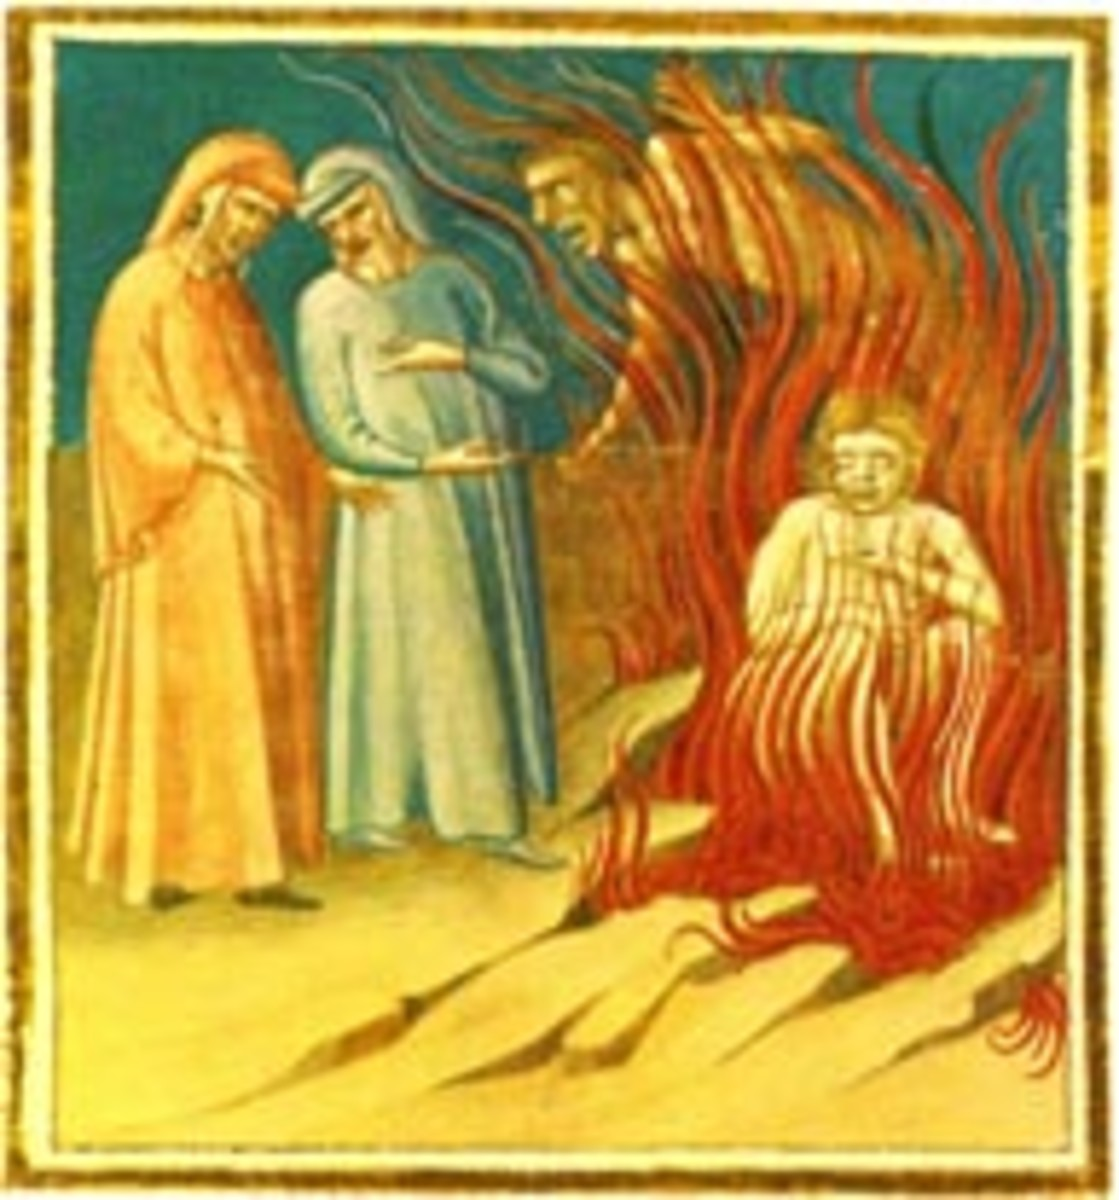 Guido da Montefeltro, Dante and Virgil